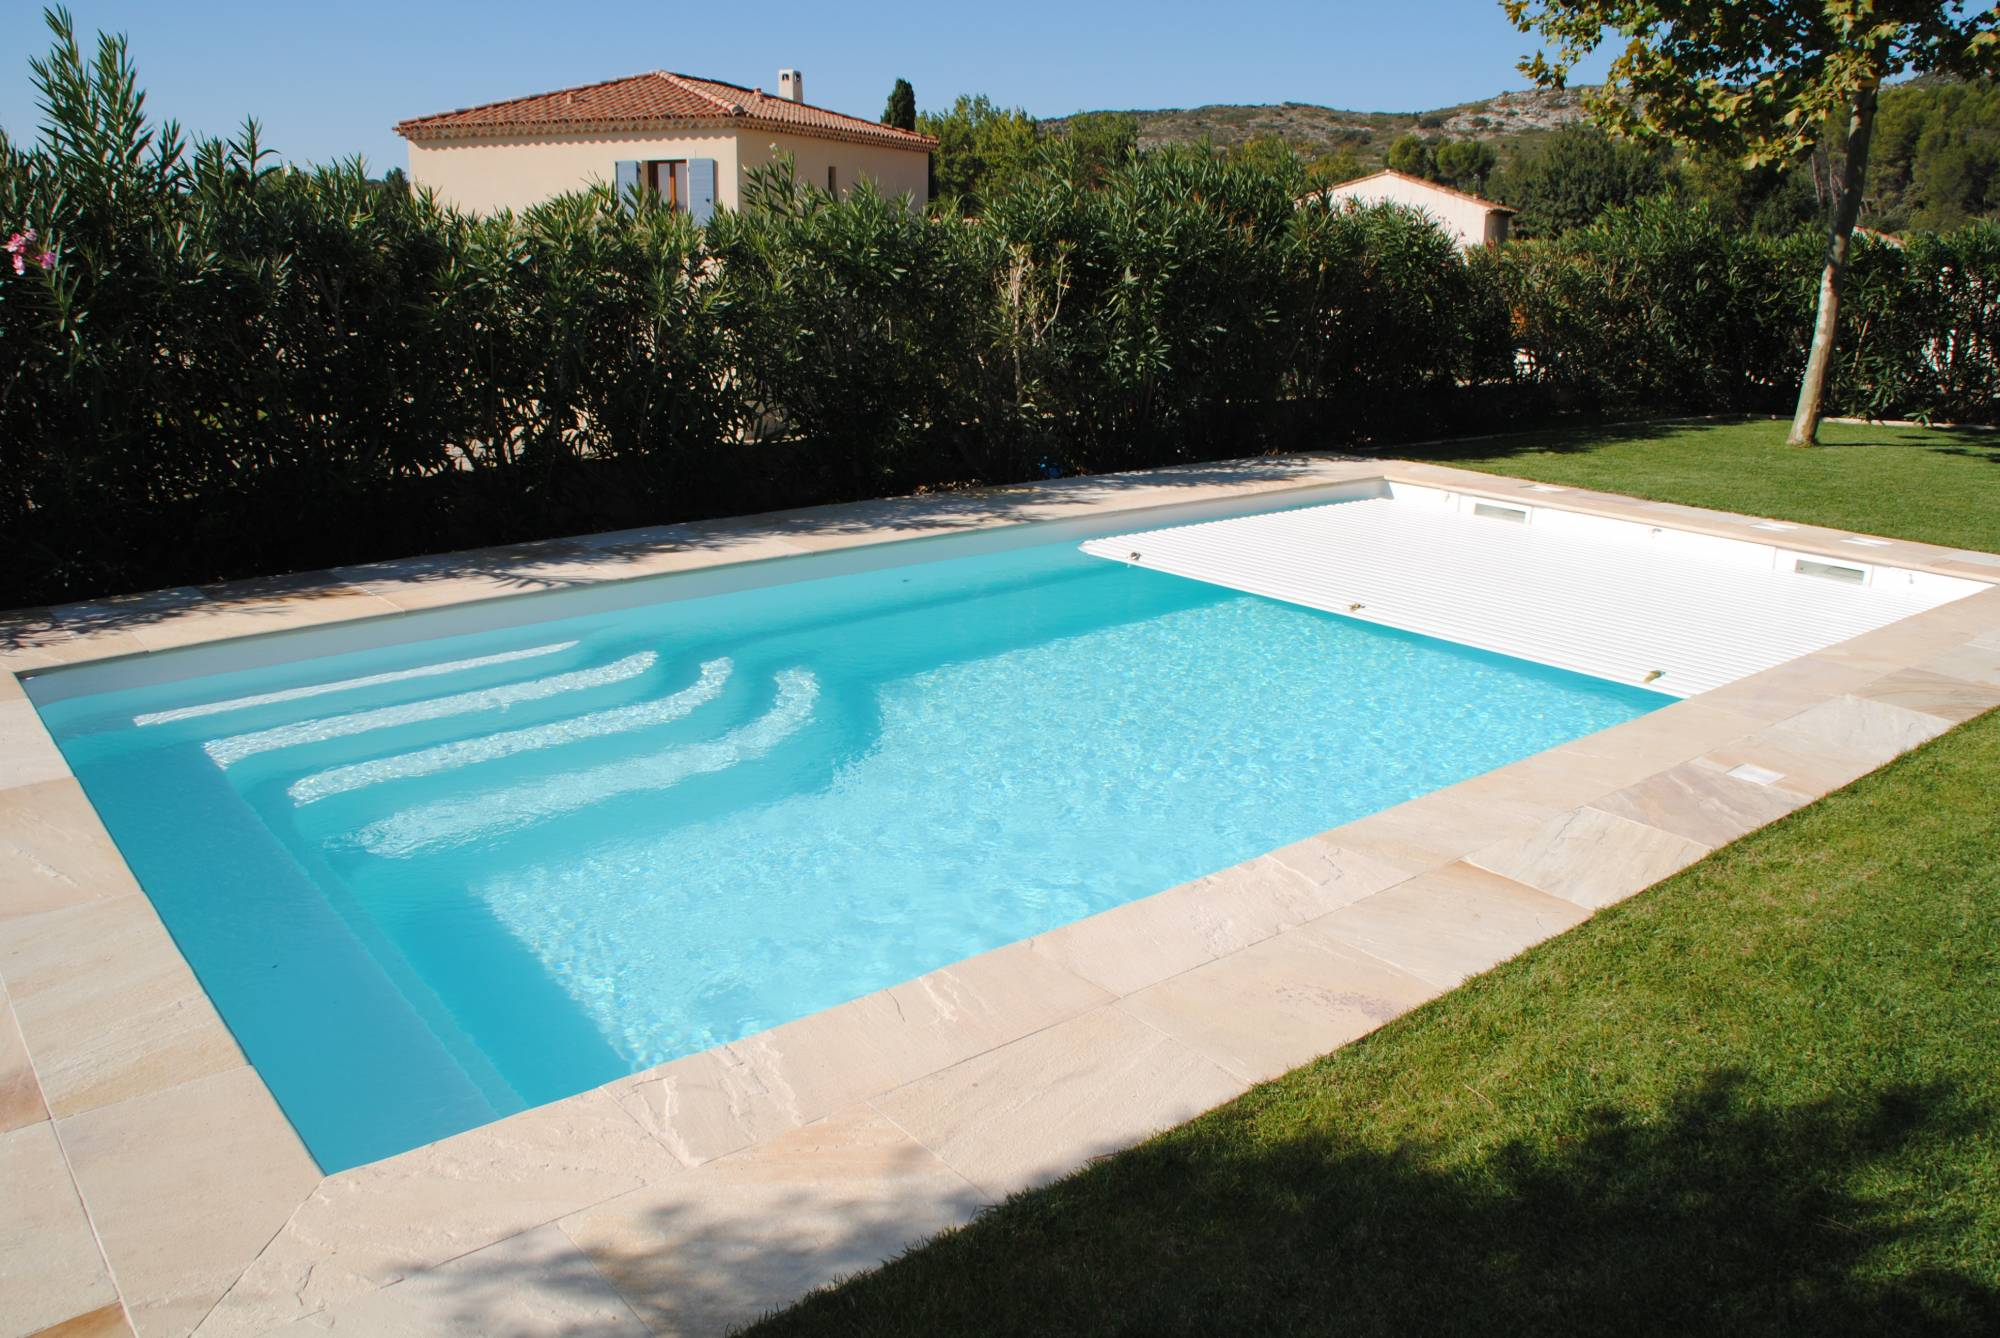 Piscine coque polyester volet immerg marseille france for Piscine polyester